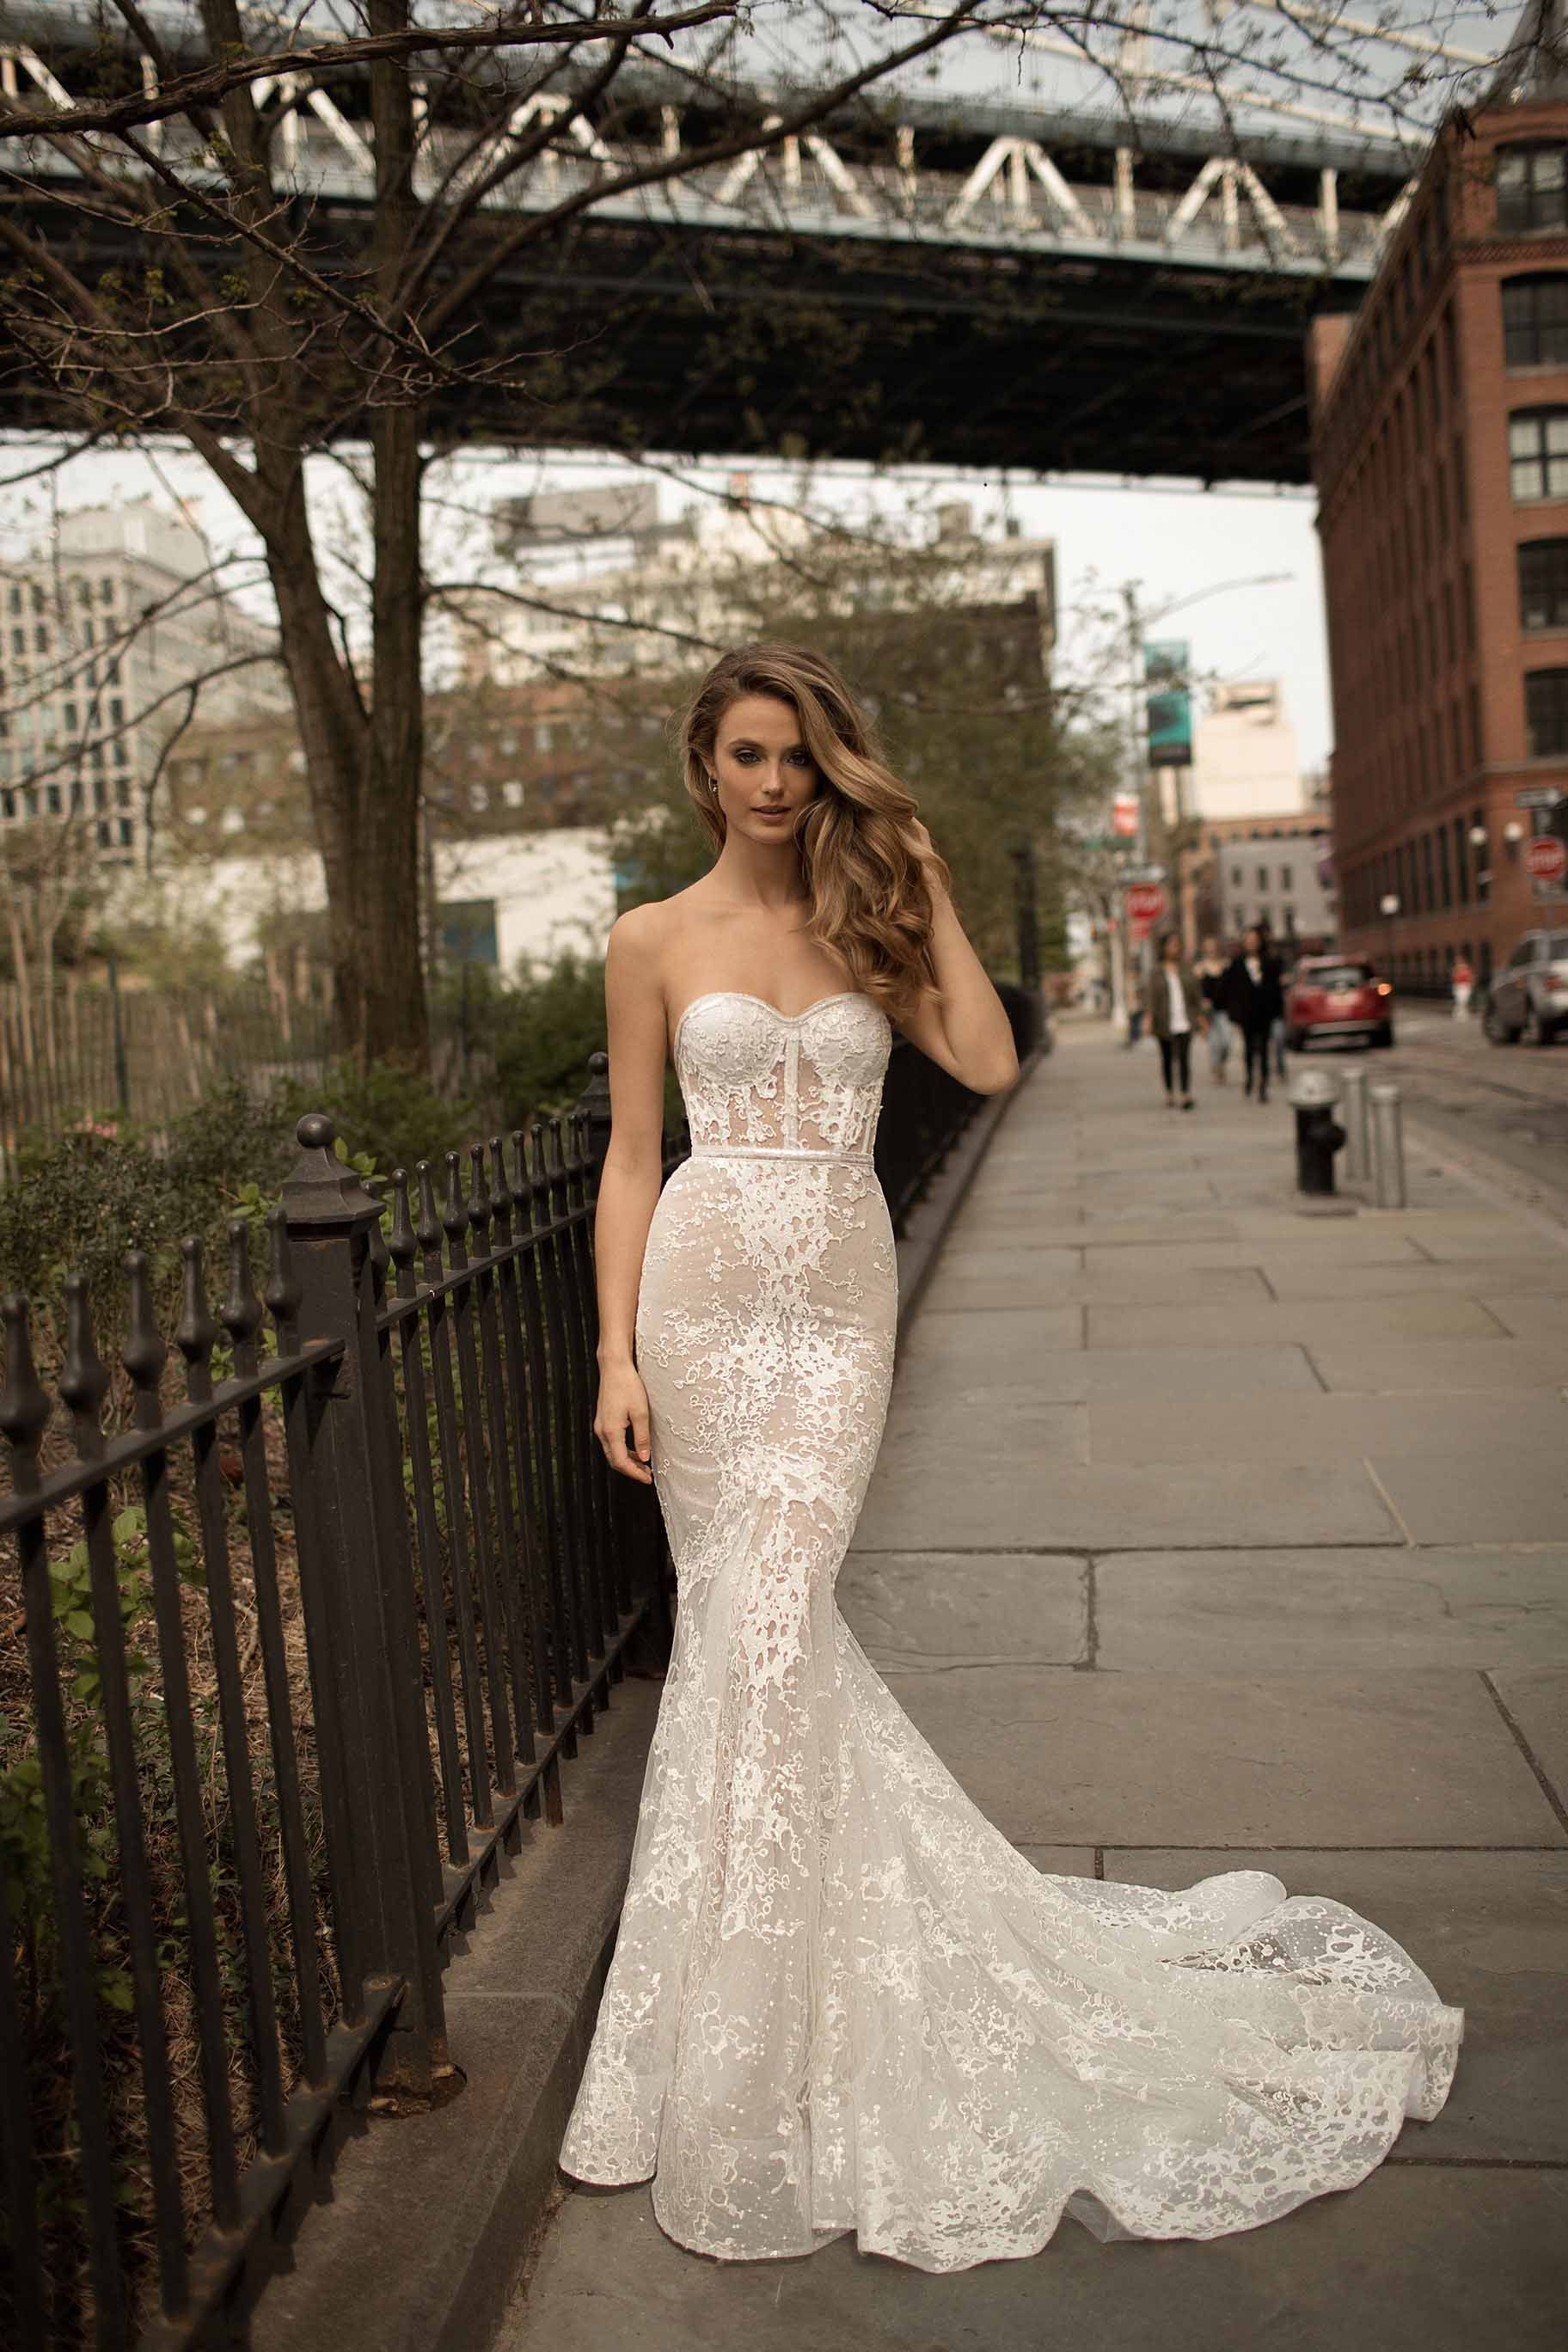 Latest berta wedding dresses 2018 spring collection wedding dress wedding dresses latest berta wedding dresses 2018 spring collection more junglespirit Choice Image